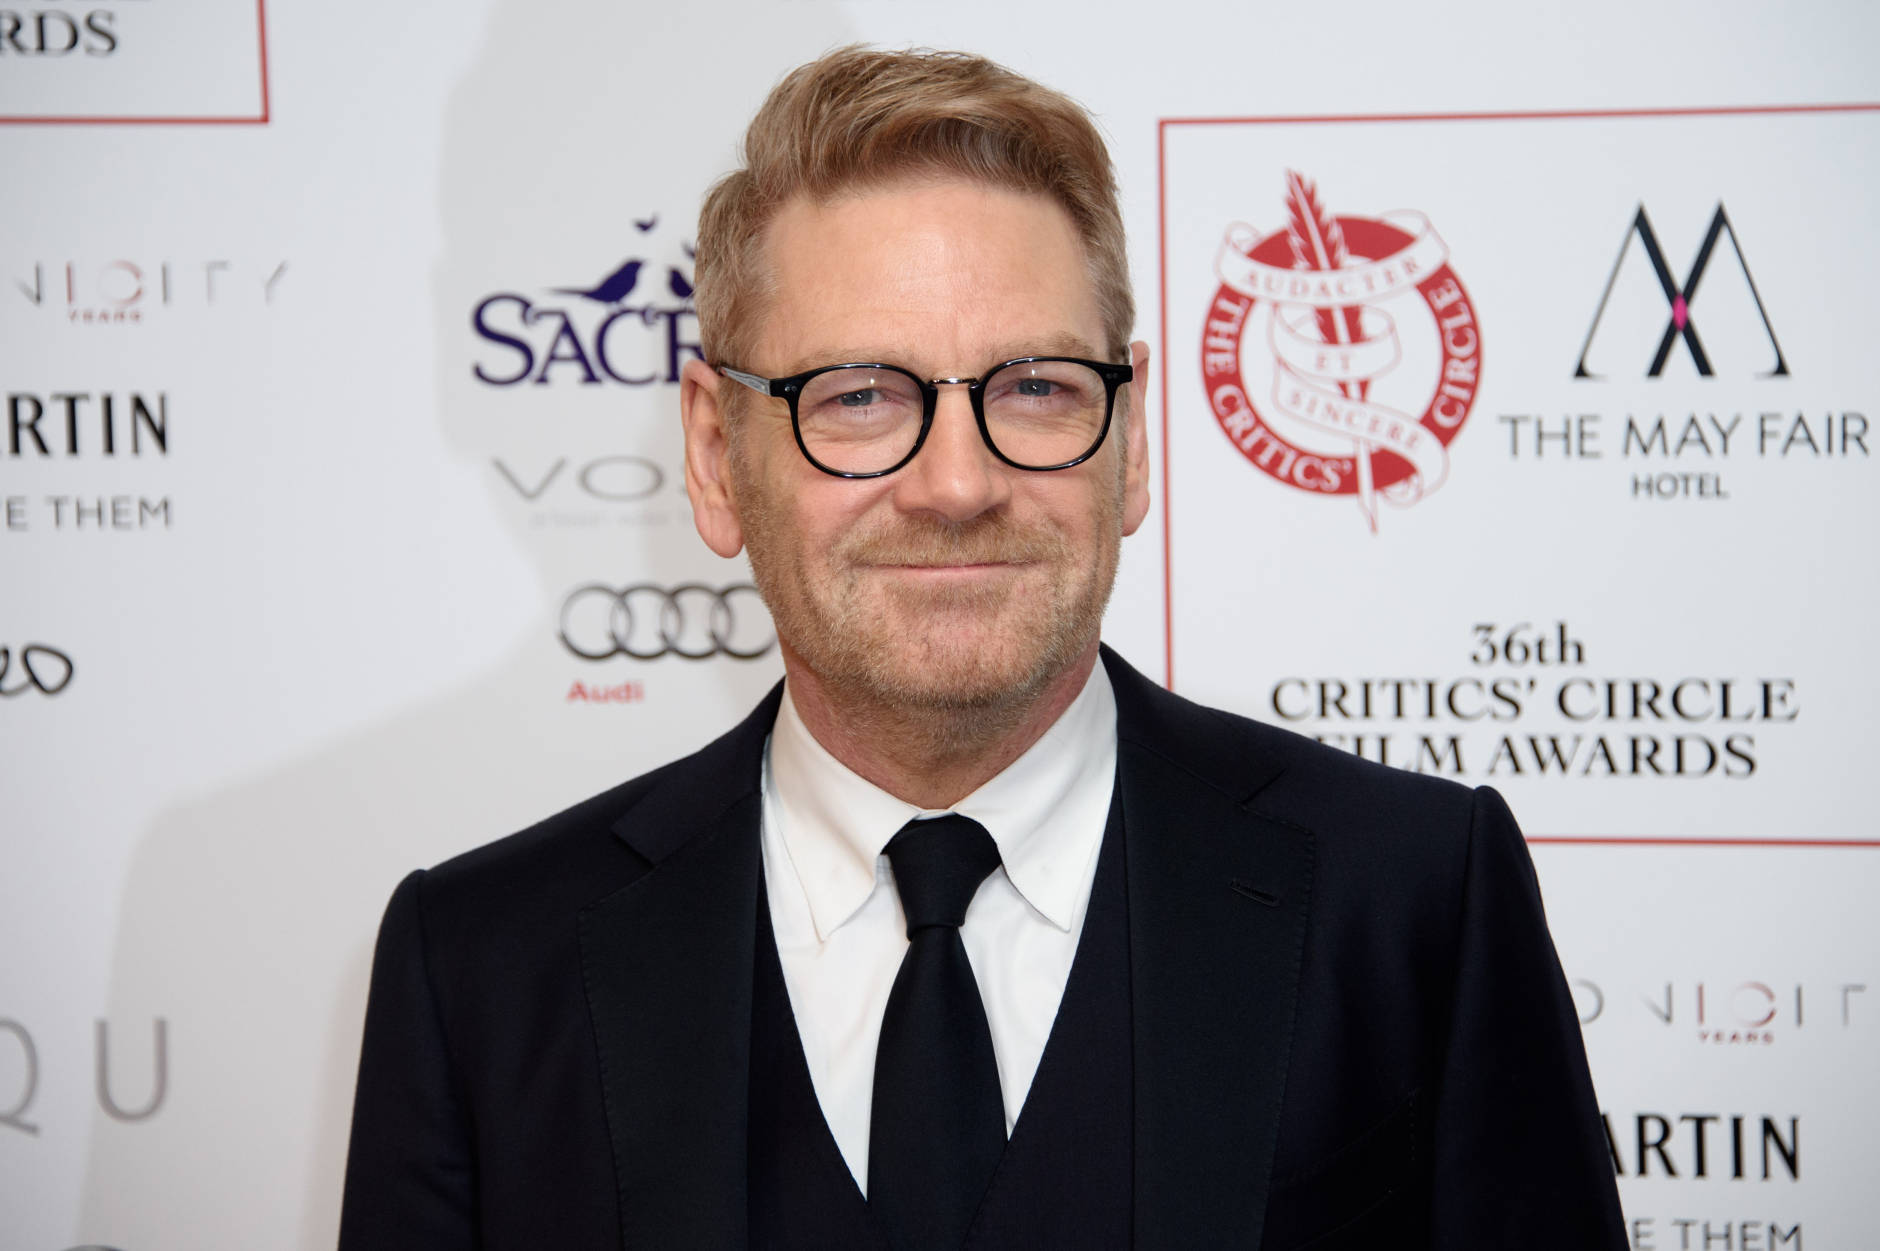 Actor Kenneth Branagh poses for photographers at the Critics Circle Awards at a central London venue, London, Sunday, Jan. 17, 2016. (Photo by Jonathan Short/Invision/AP)